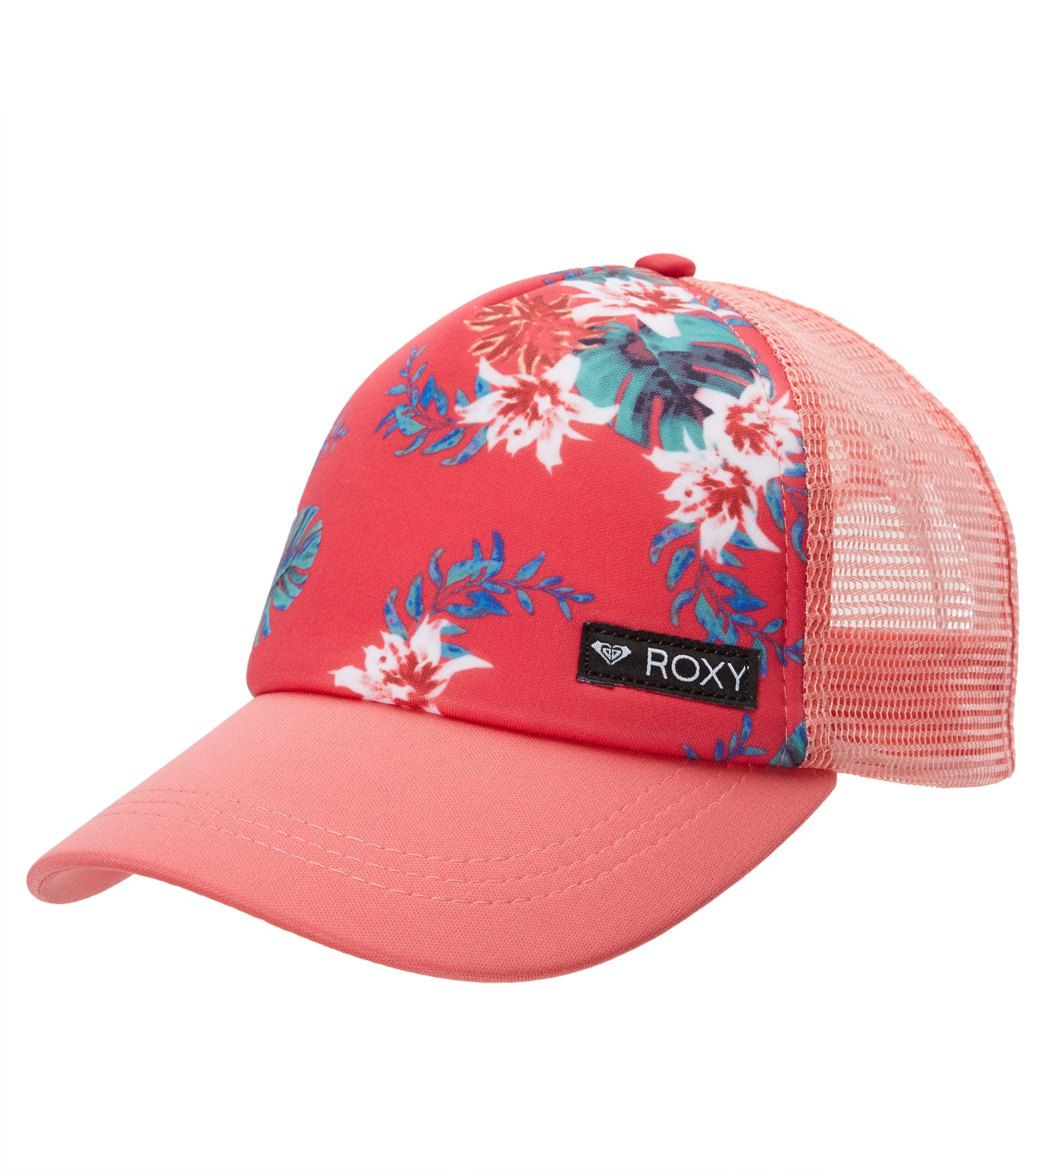 d530a5960a6 Roxy Girls  Just Ok Trucker Hat at SwimOutlet.com